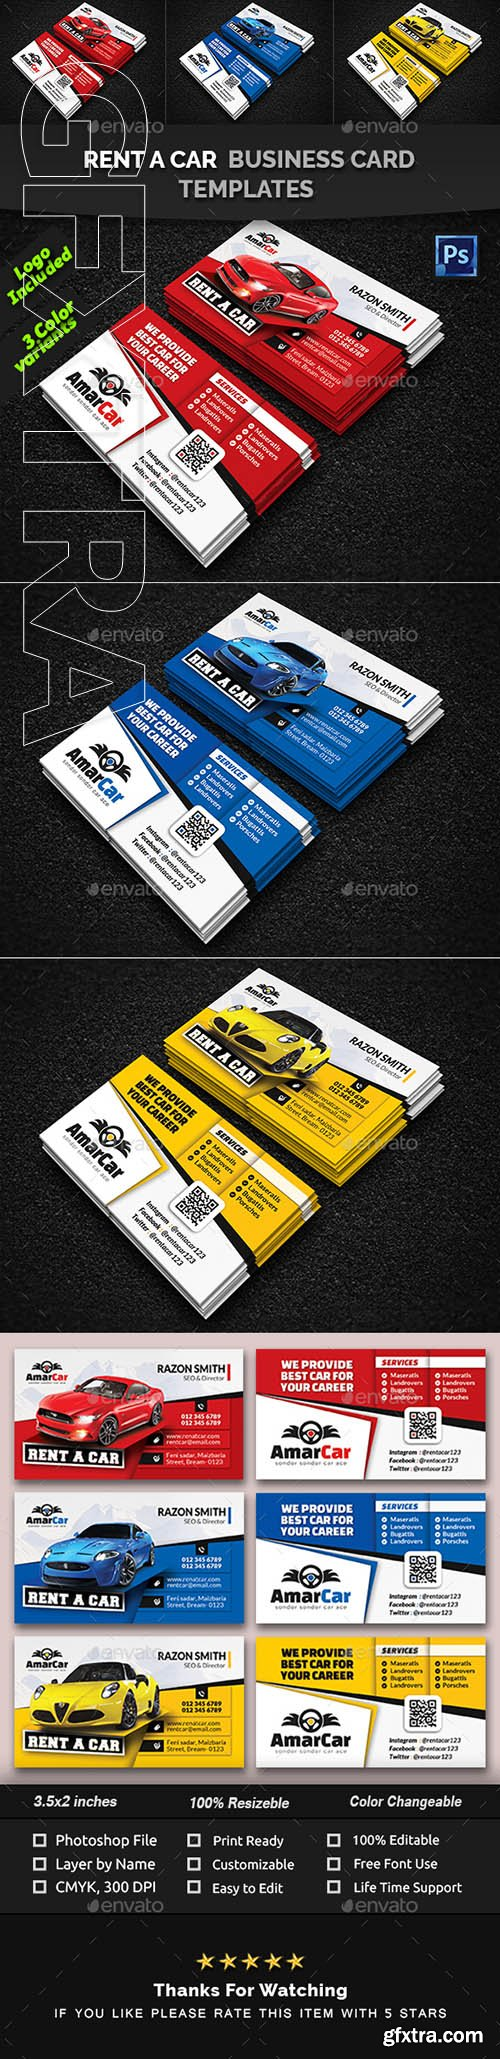 Creativemarket rent a car business card templates 22558238 creativemarket rent a car business card templates 22558238 reheart Images